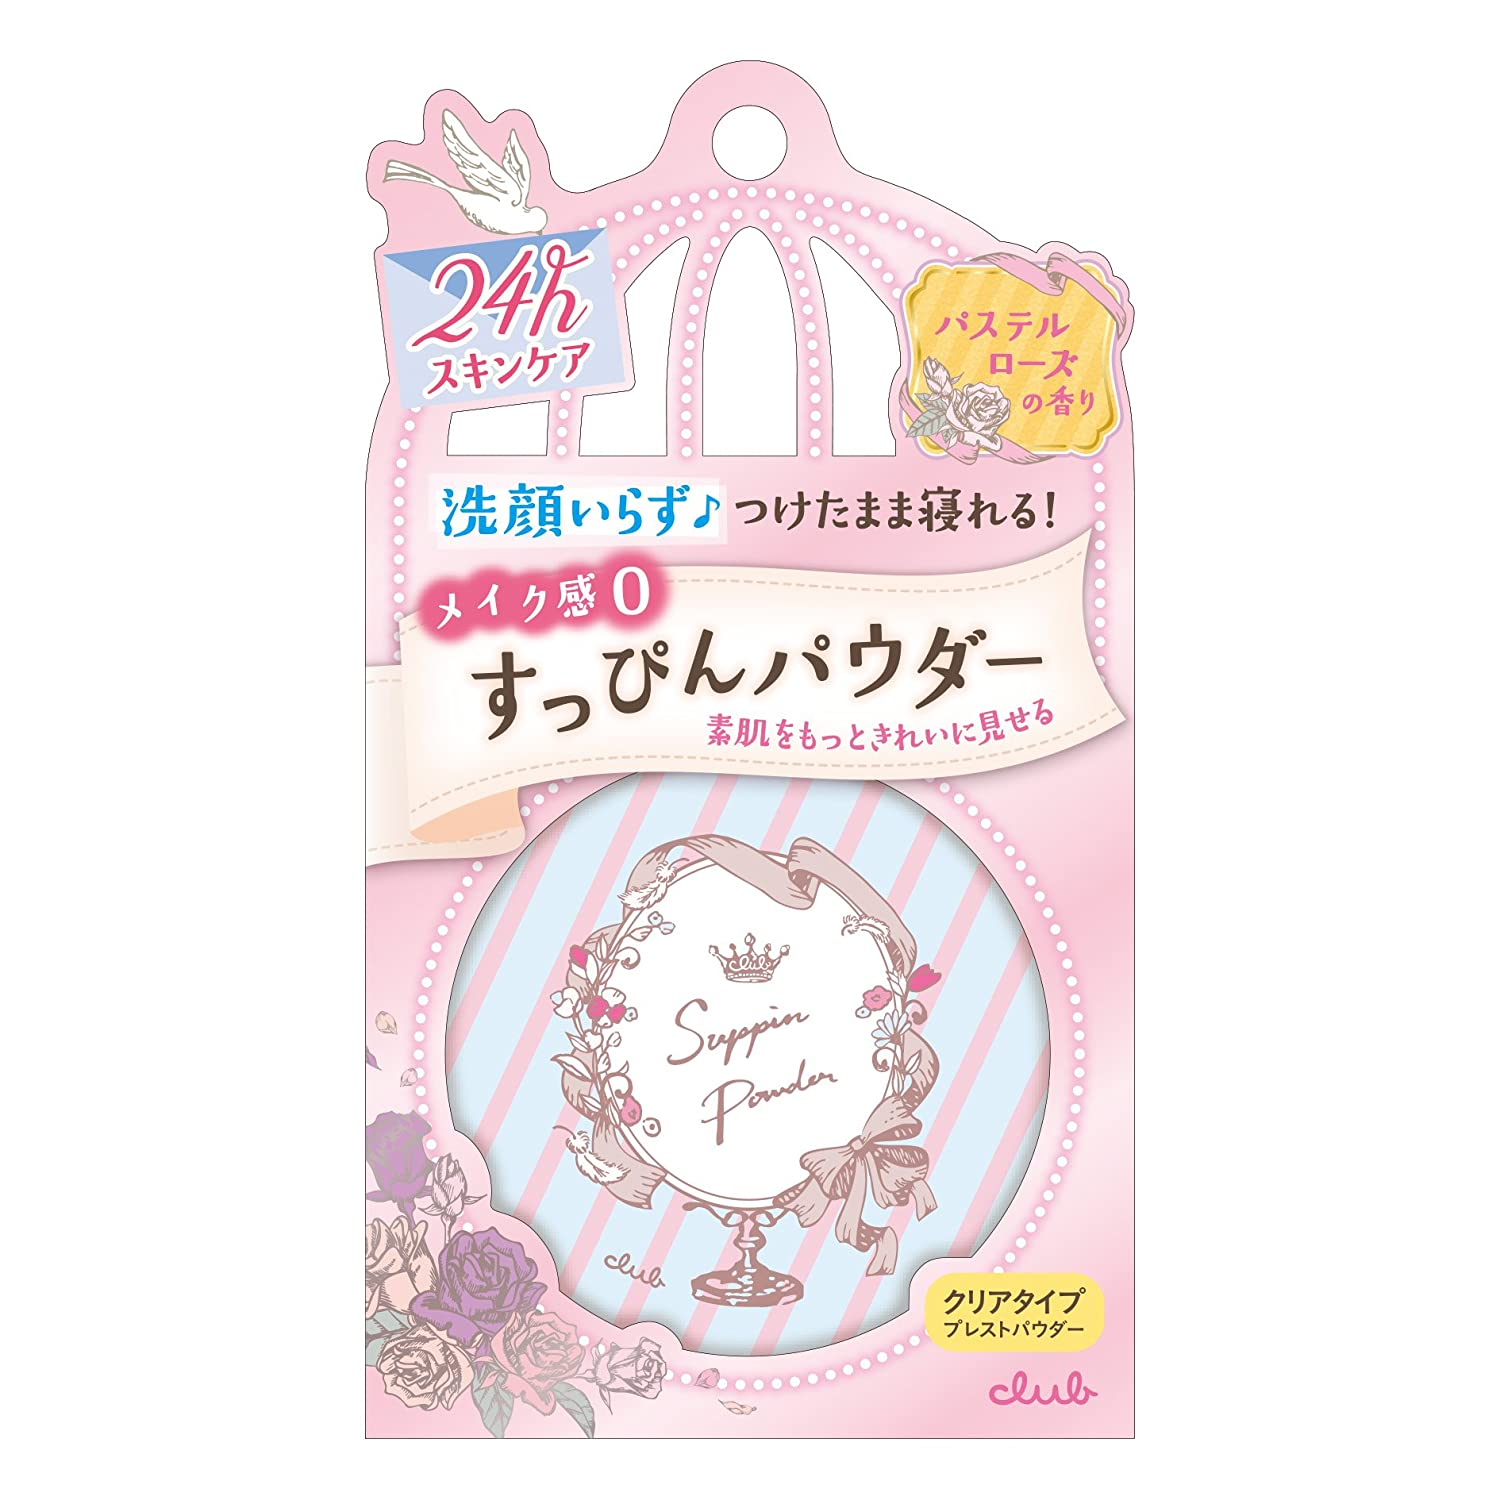 CLUB Yuagari Suppin Powder Pastel Rose Scent 26g